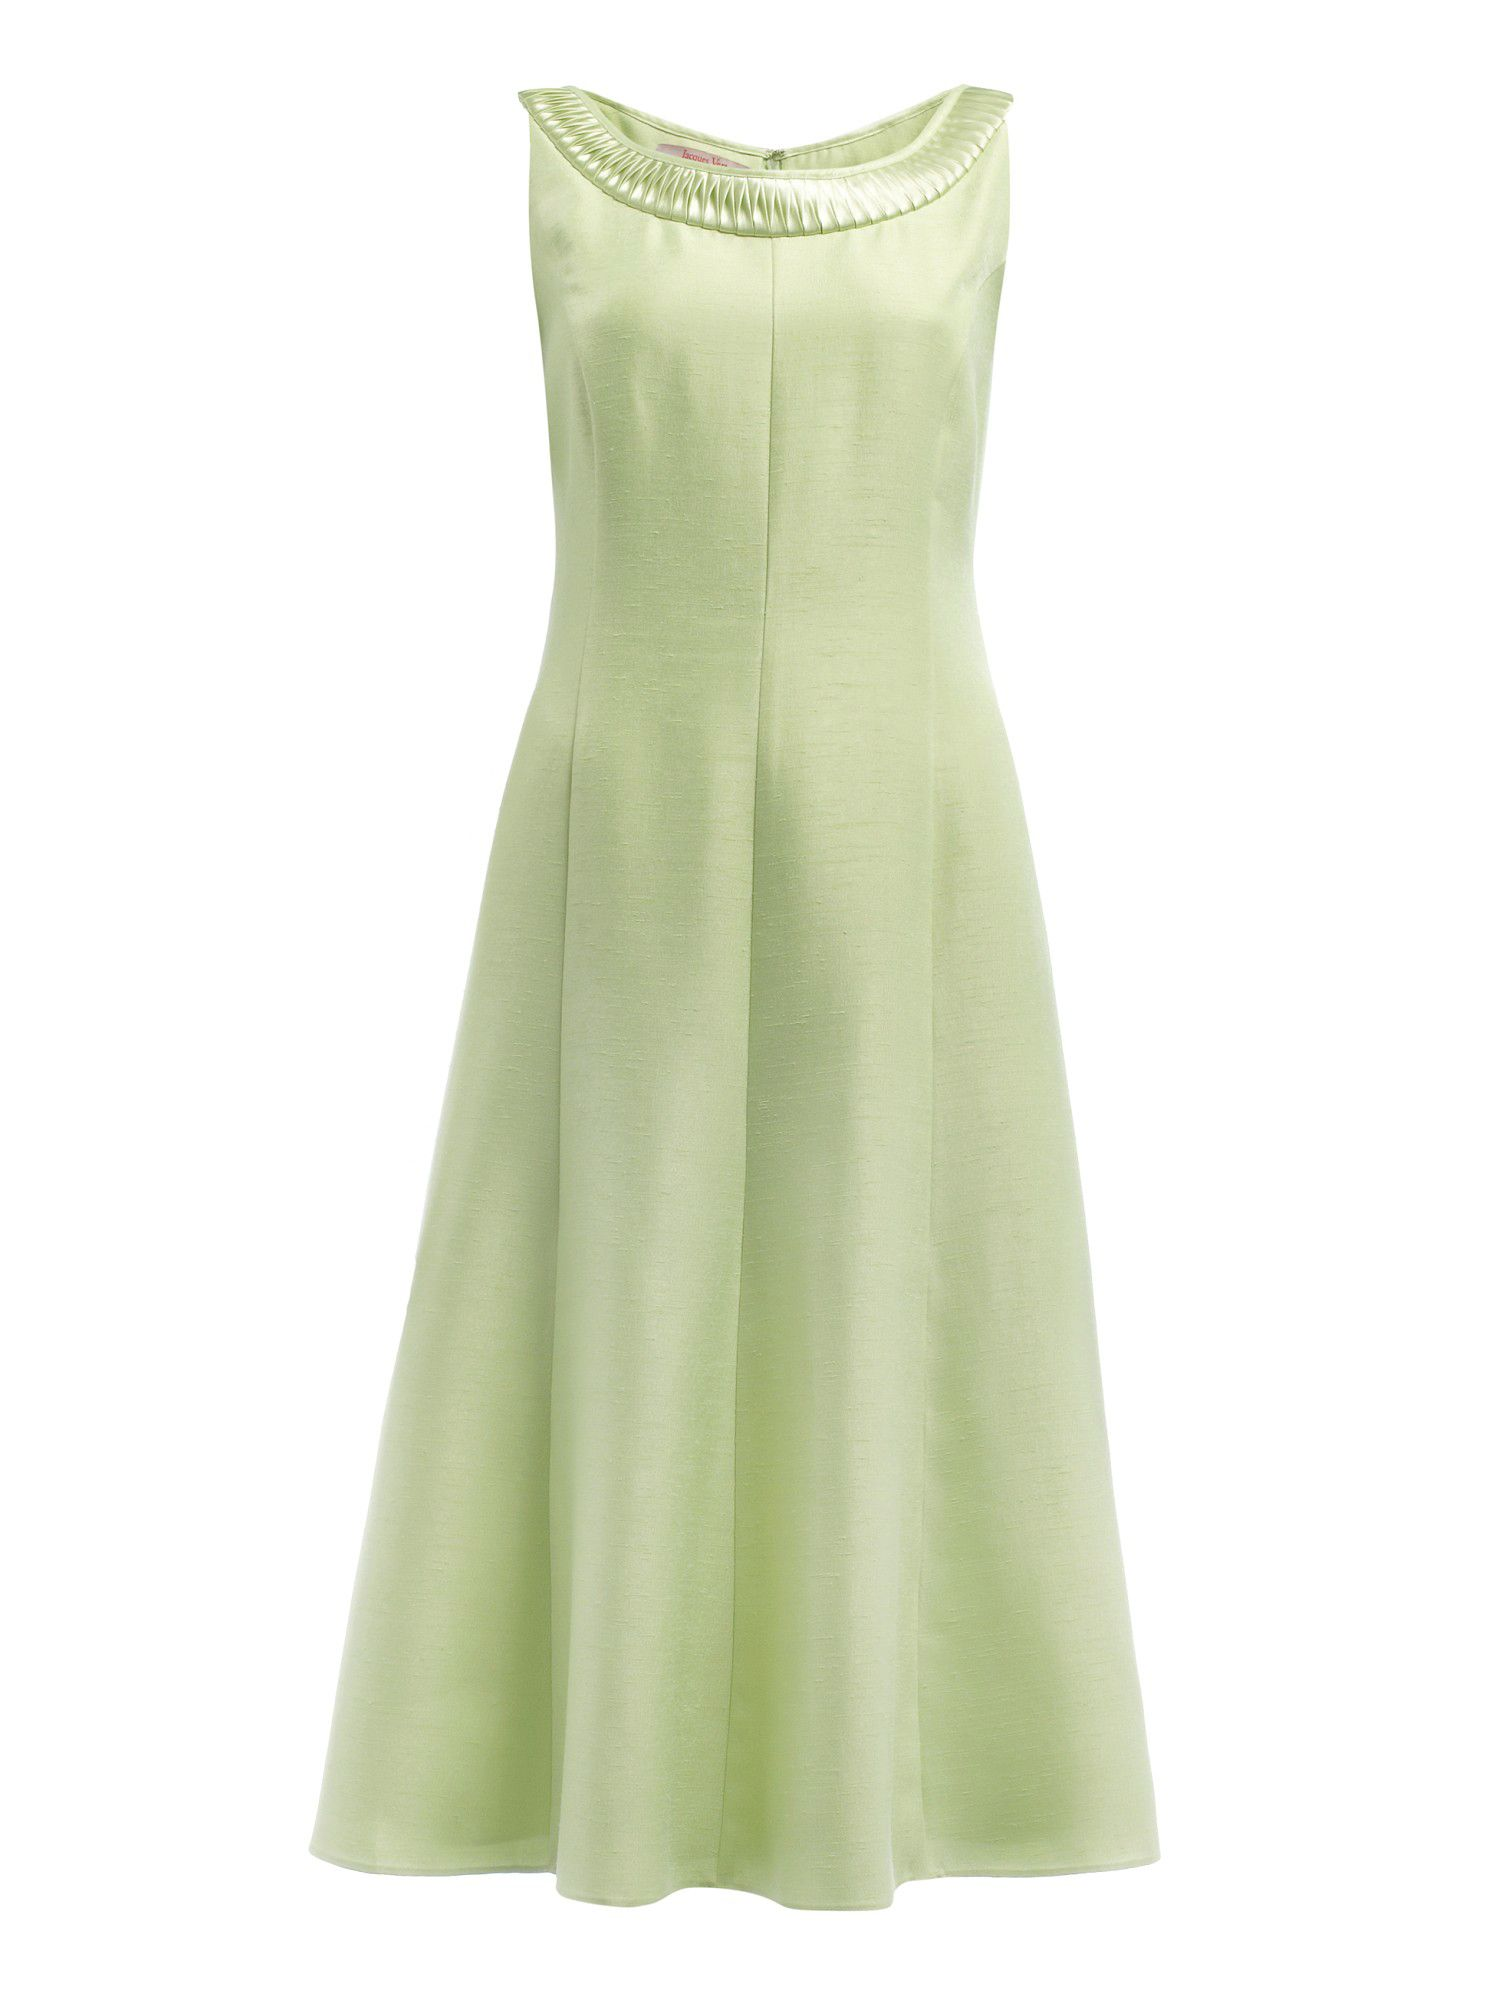 Apple pleated neckline dress